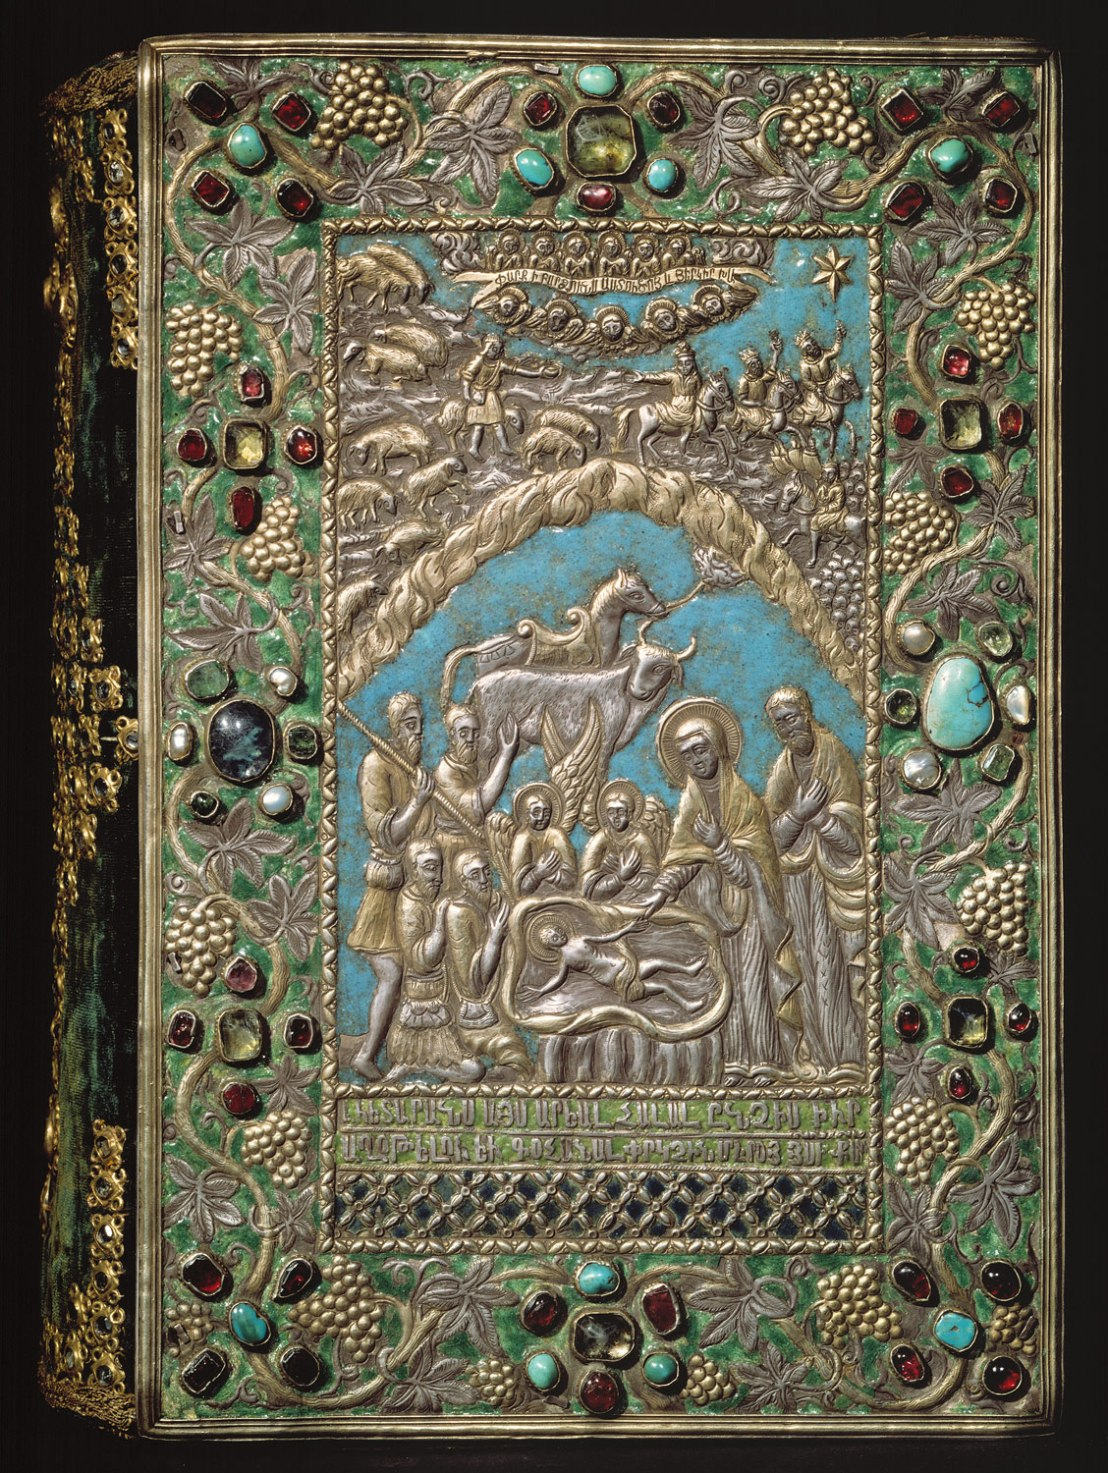 "This jeweled, enameled, and gilt-silver repoussé cover for a 13th century Armenian gospel is an examples of the work produced in the late seventeenth-century silversmith workshop of Kayseri. Both front and back cover are signed, informing us that they were made in Kayseri in 1691 by Astuatsatur Shahamir. The central image on the front cover depicts the Adoration of the Shepherds, and above, the magi following the star. Amid angels, the banner in the sky proclaims, ""Glory to God in the highest and on Earth peace."" The cover was attached to a gospel copied and illuminated by a thirteenth-century scribe named Grigor, from Cilicia."